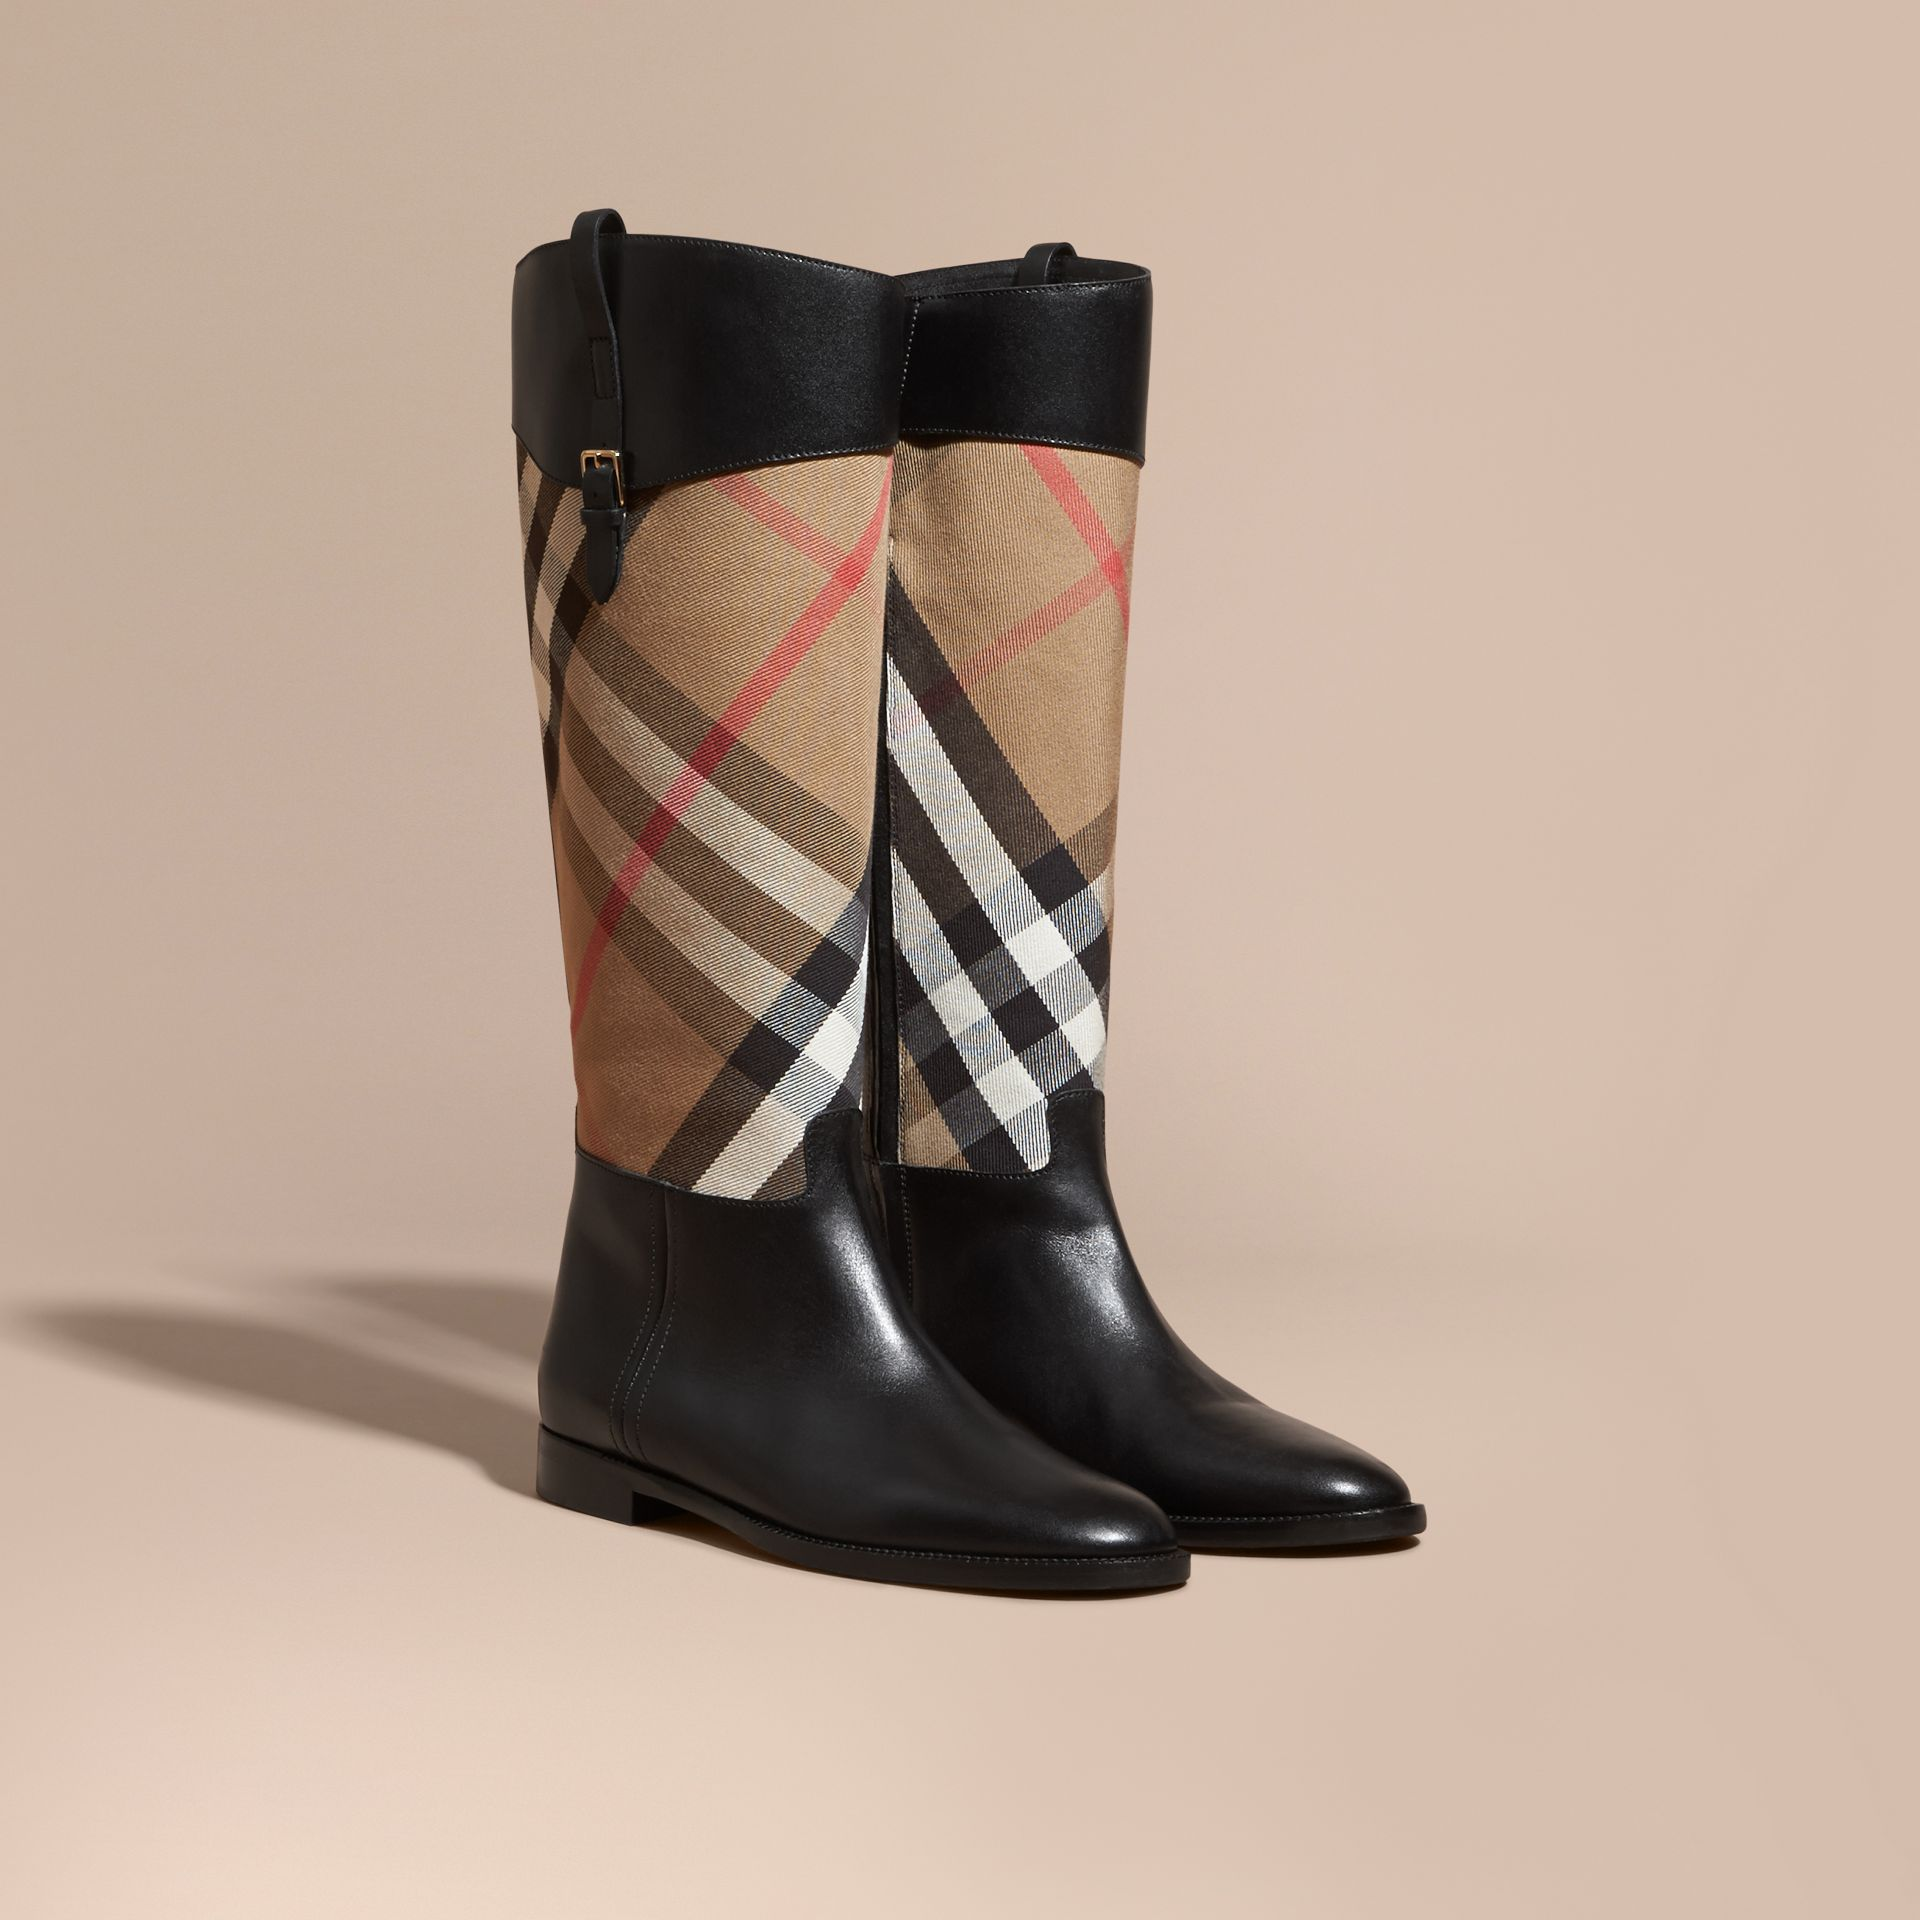 House Check and Leather Riding Boots in Black - Women | Burberry - gallery image 1